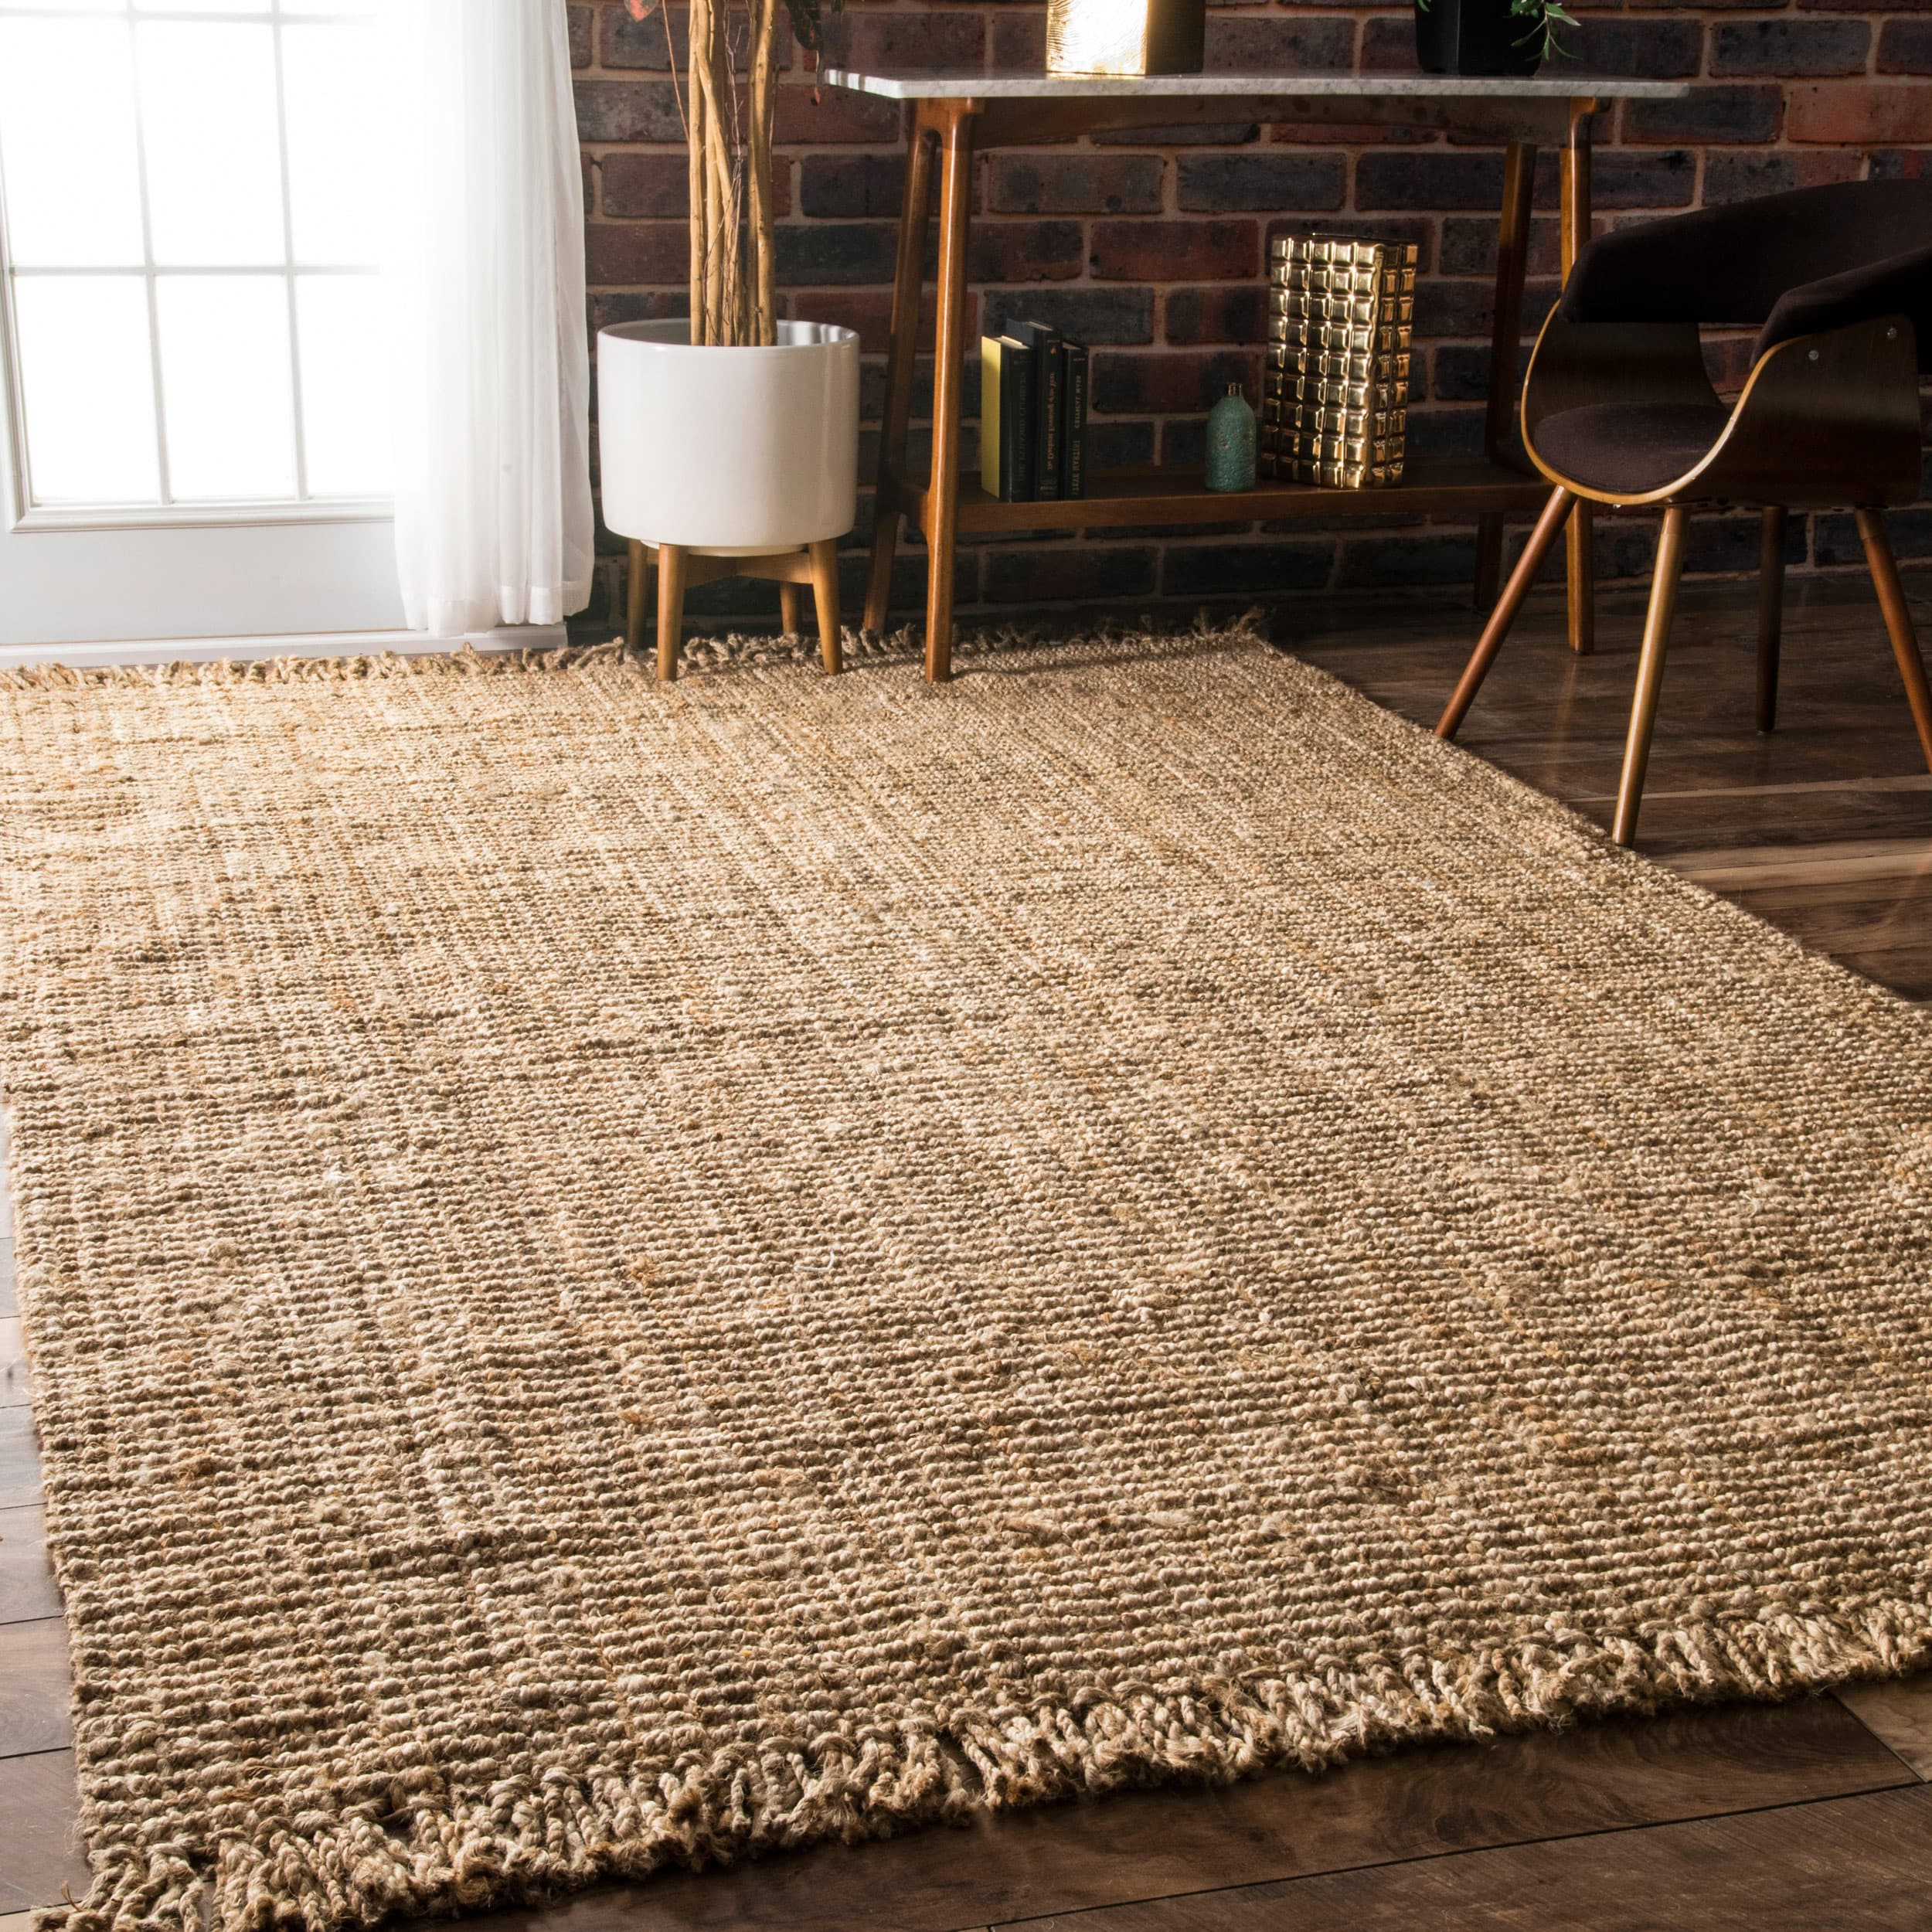 The perfect jute rug for your home